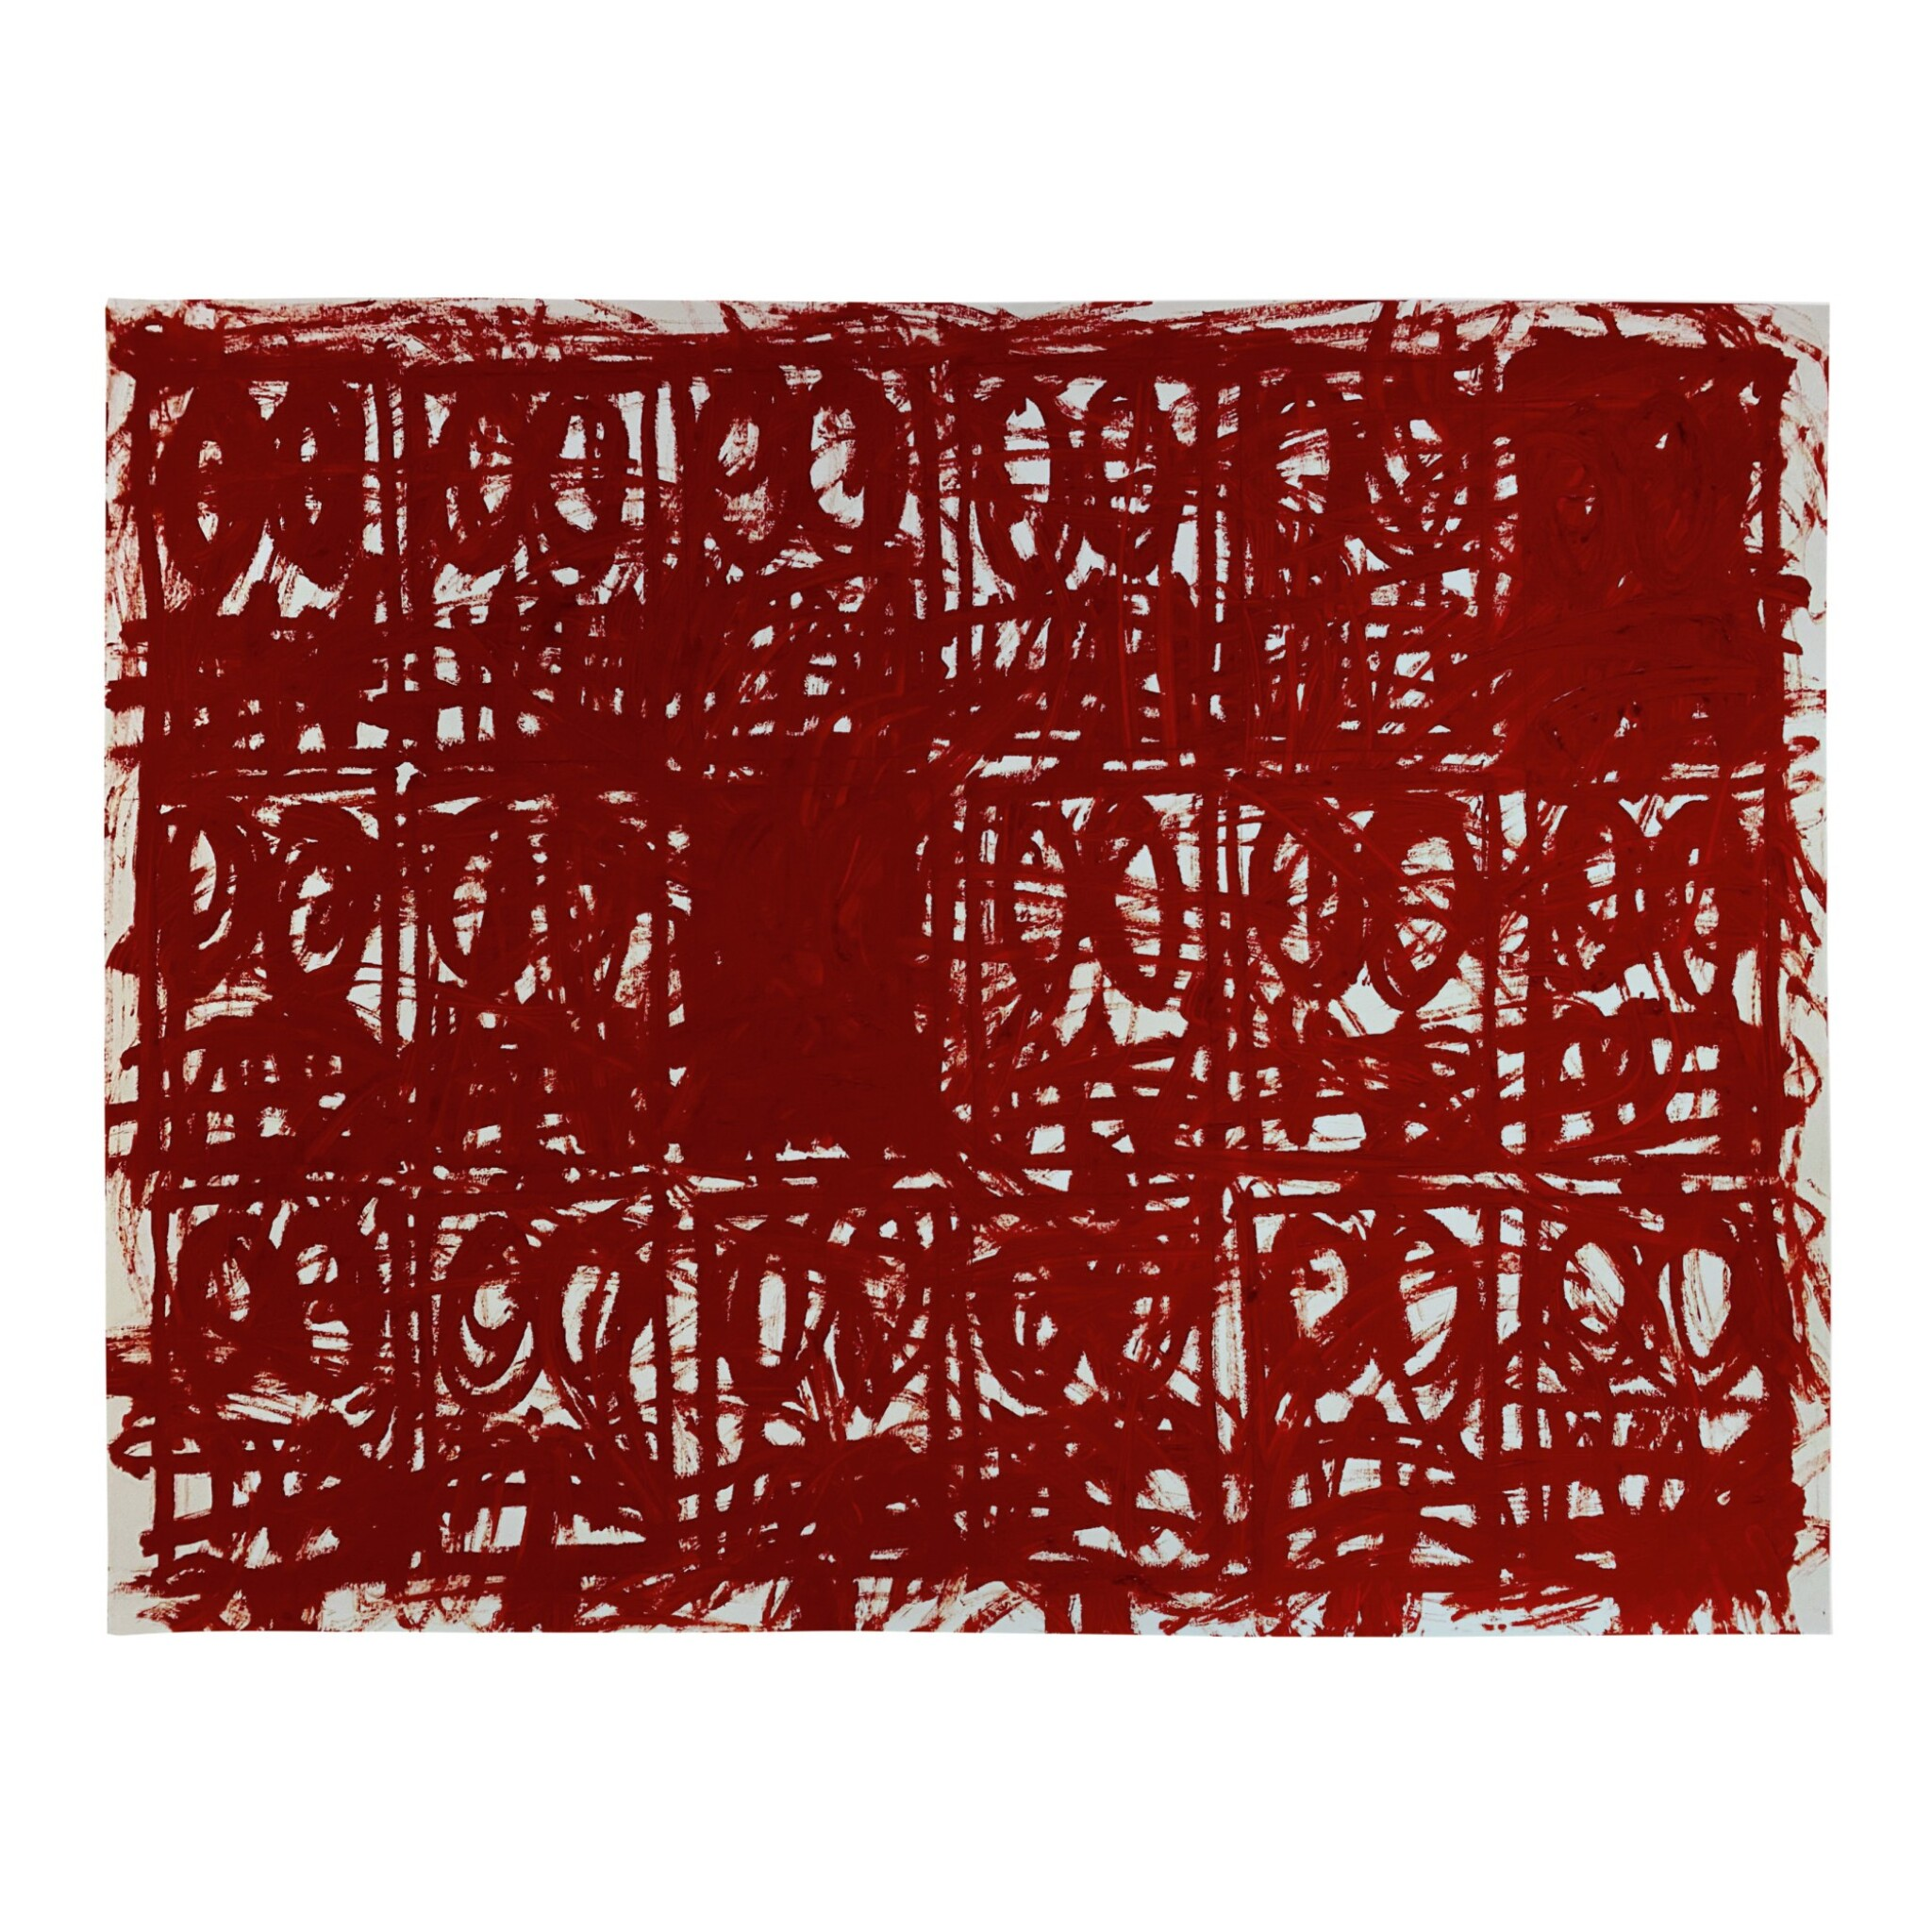 View full screen - View 1 of Lot 211. RASHID JOHNSON  | UNTITLED ANXIOUS RED DRAWING .